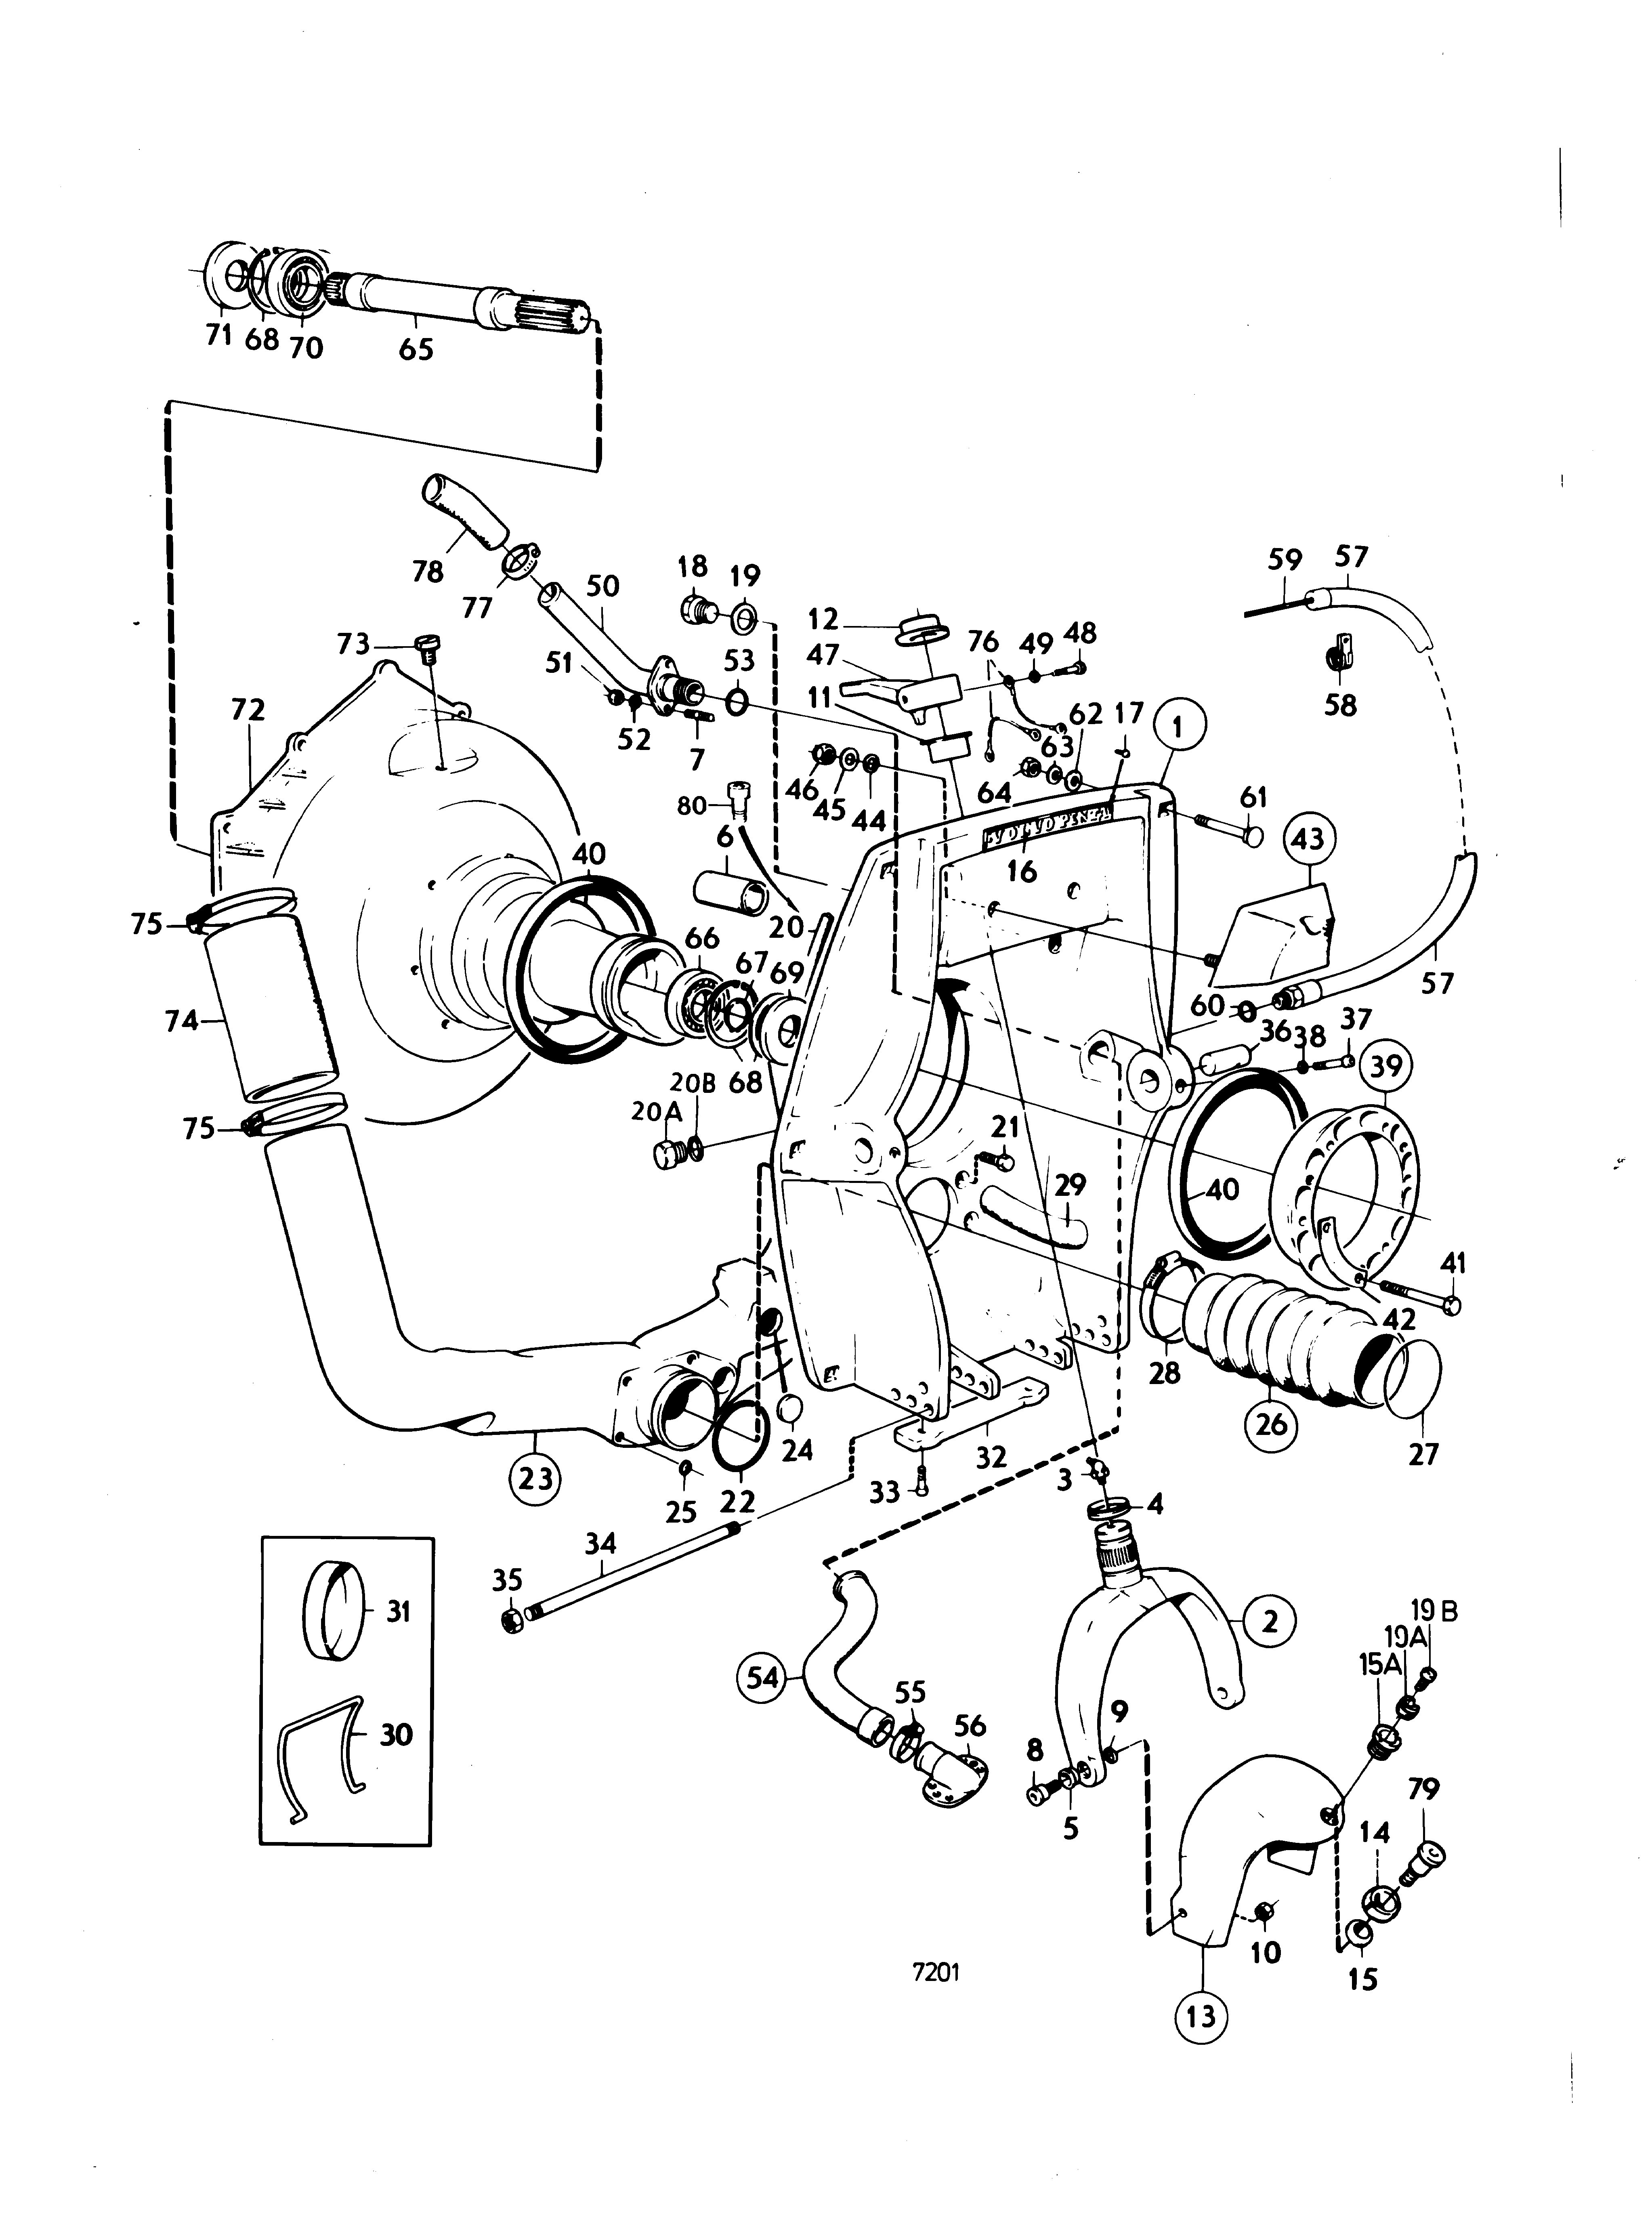 32 Volvo D12 Engine Parts Diagram